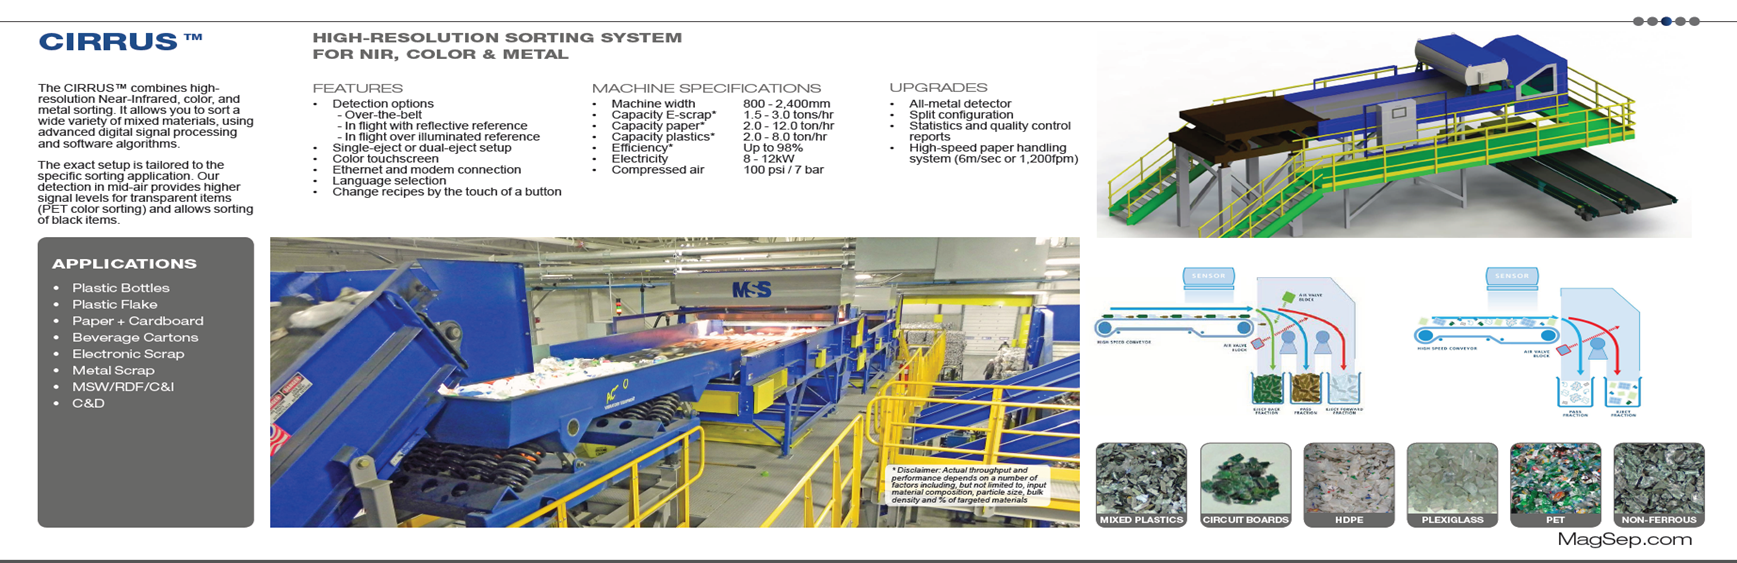 Cirrus The Ultimate Material Sorting Equipment By Mss Inc Scrap Printed Circuit Board Recycling From Professional